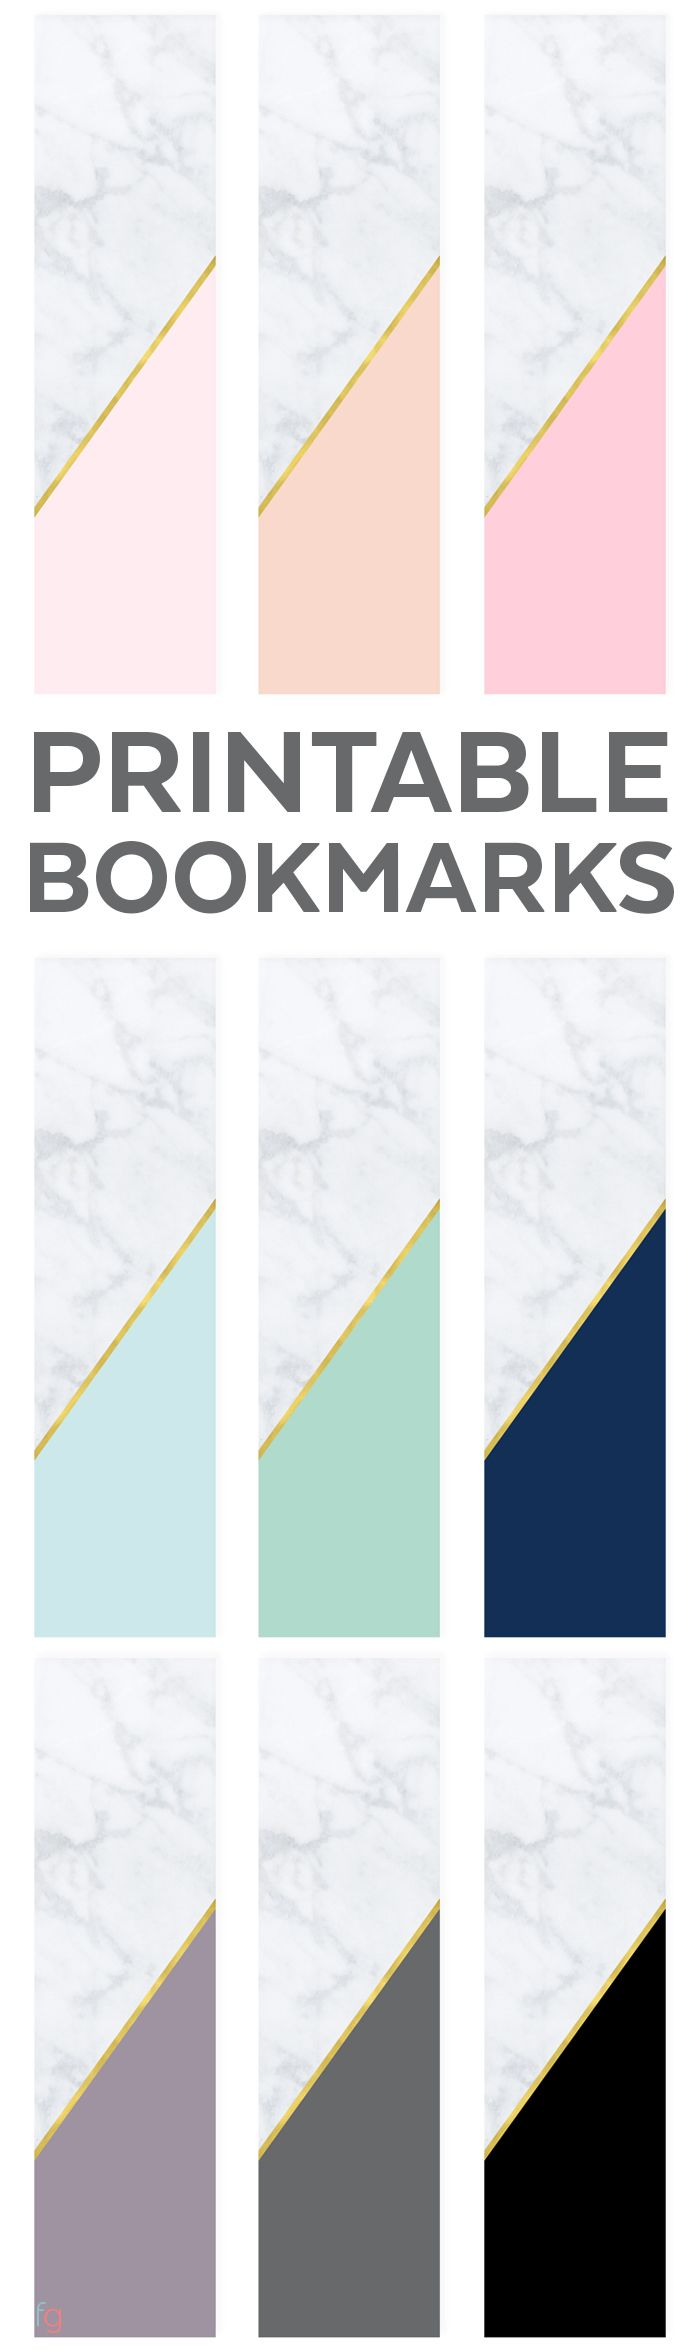 Bookmarks Printable | Free Printable Bookmarks Free | Book Lovers | Free Printable Bookmarks for Adults | Modern Printables | Marble and Gold via @frugalitygal